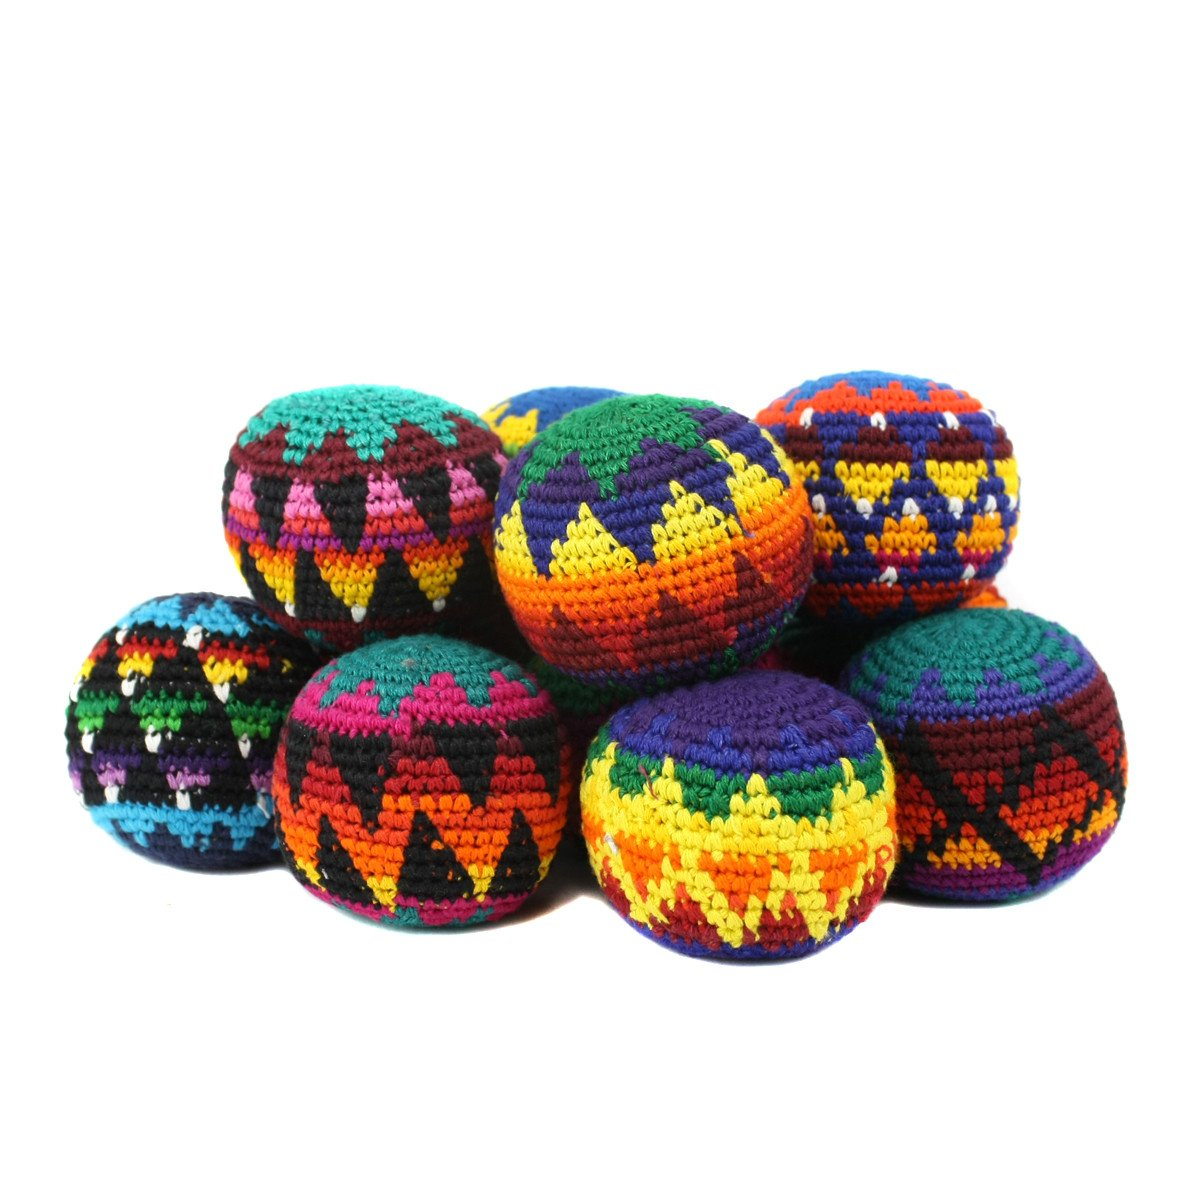 Peruvian Arts Hacky Sack Assorted Color- Set of 10